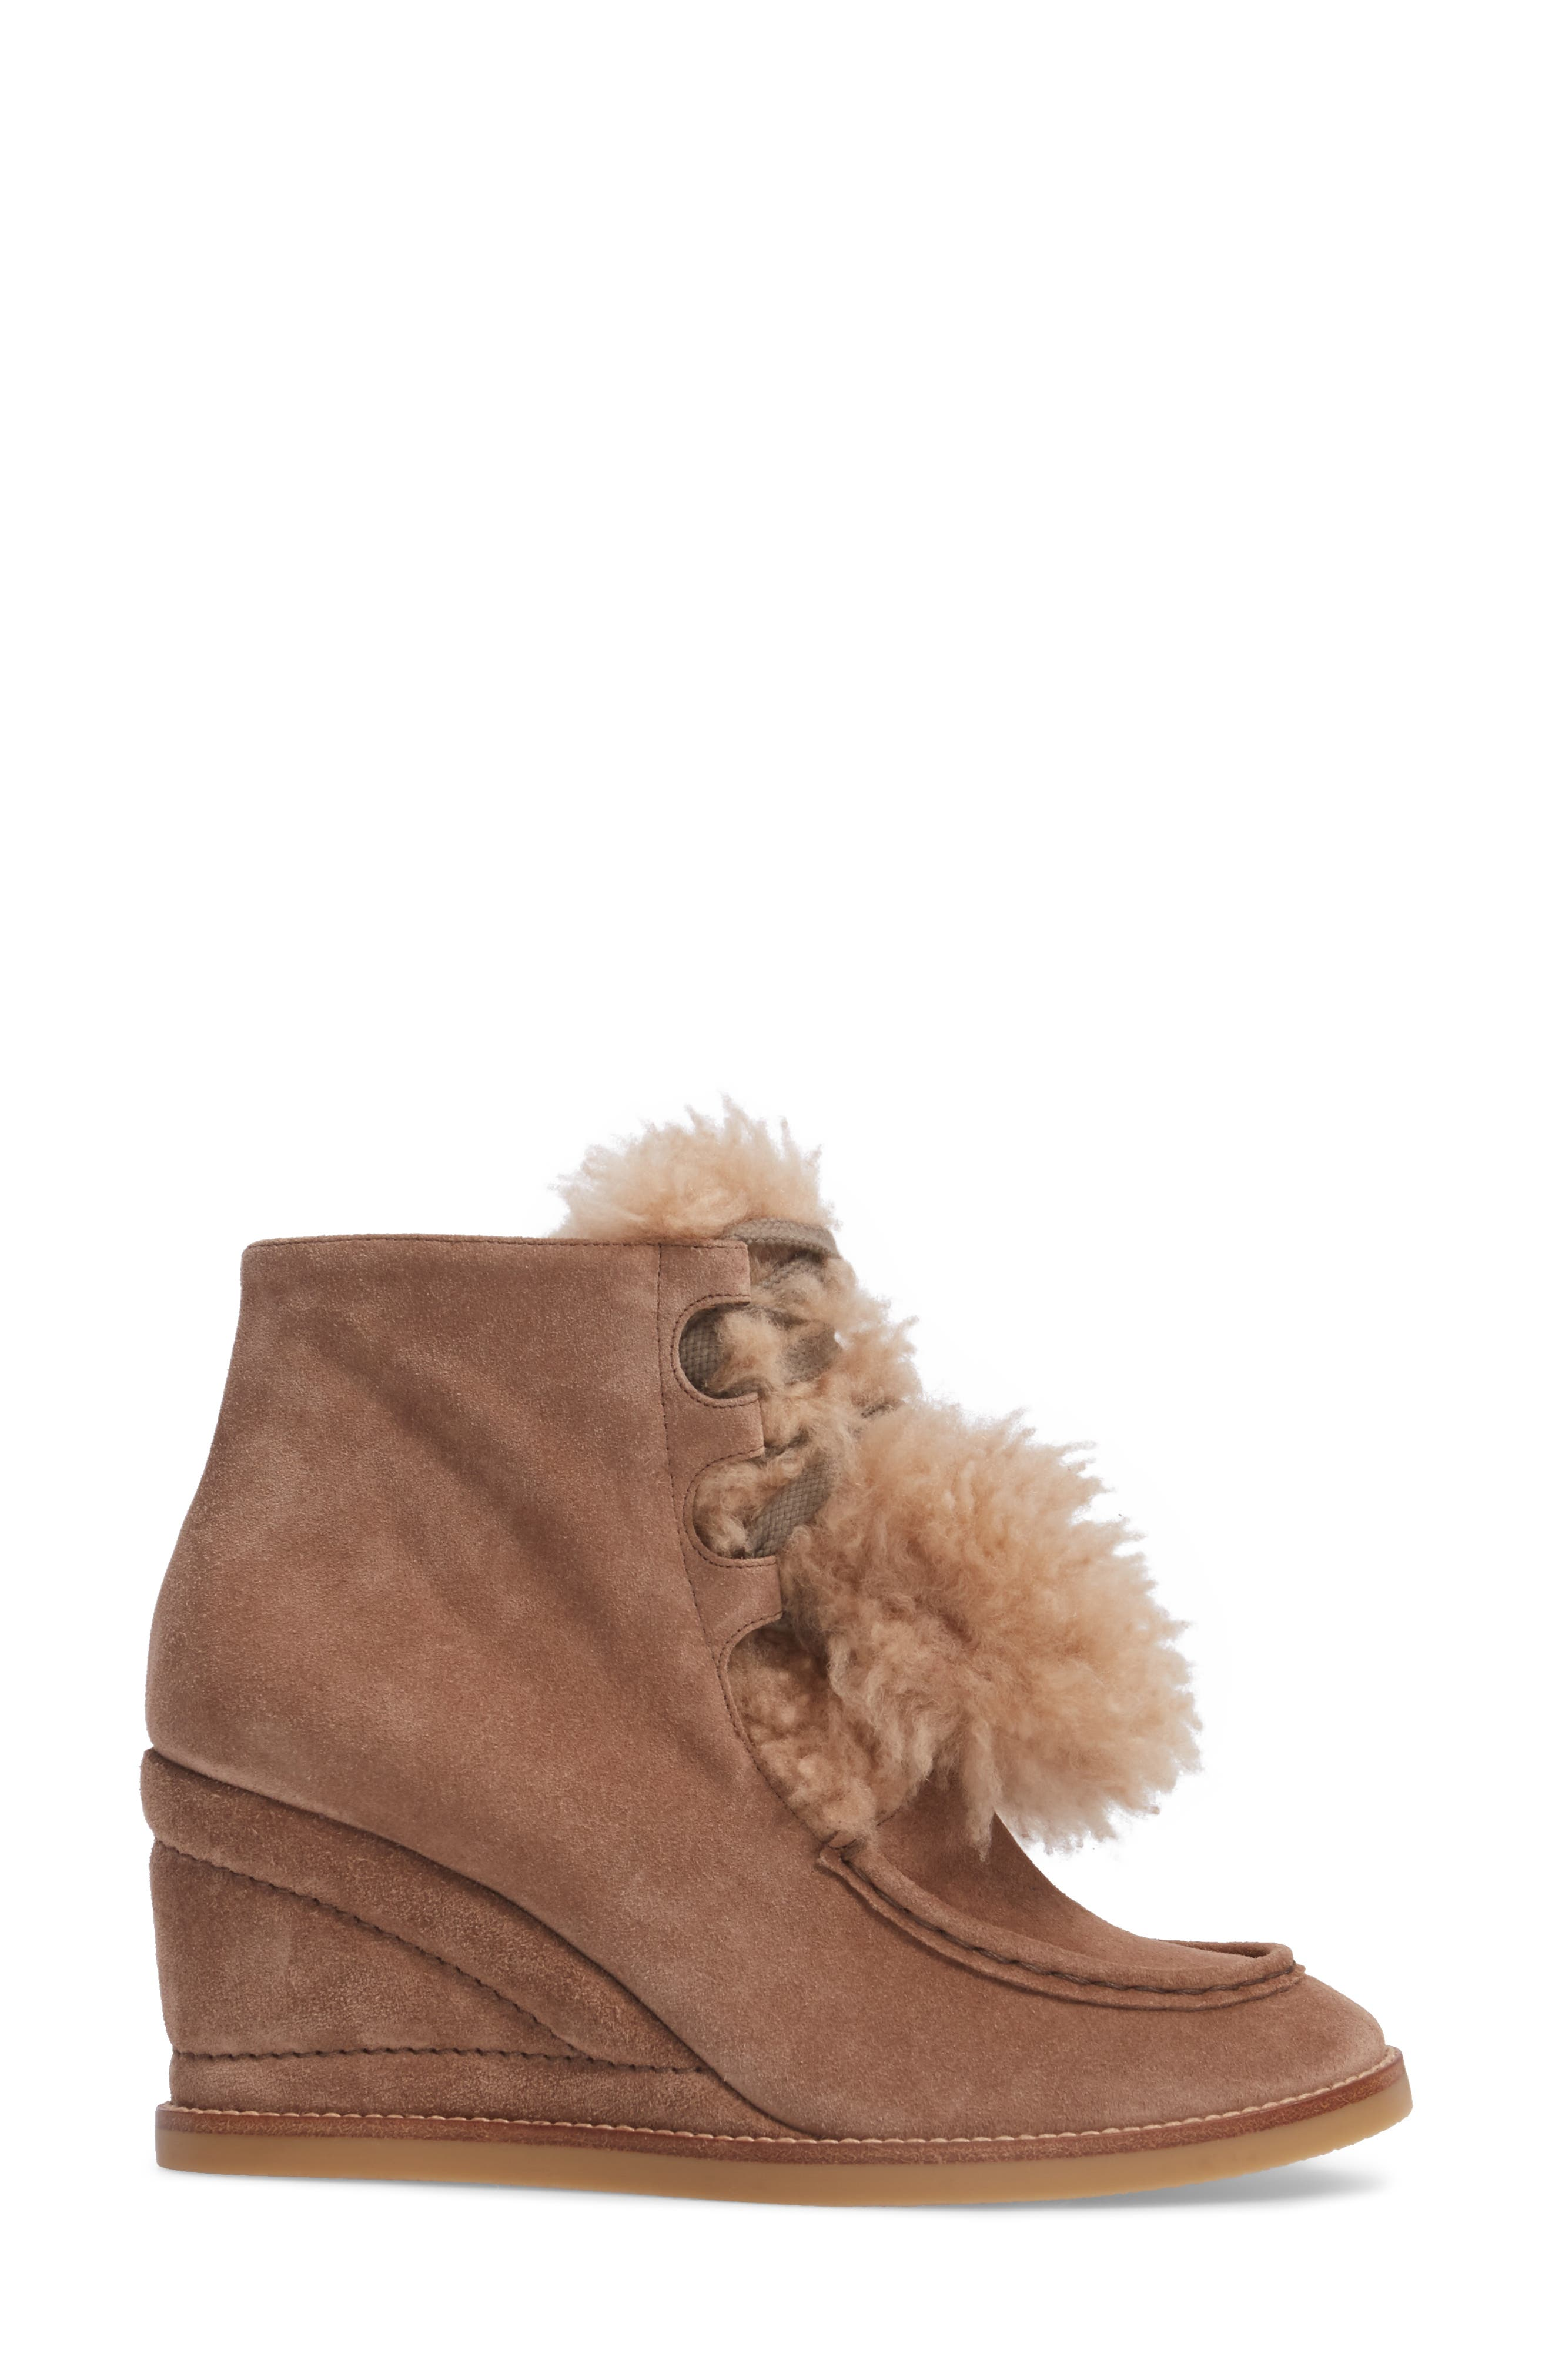 Peggy Genuine Shearling Wedge Bootie,                             Alternate thumbnail 3, color,                             250